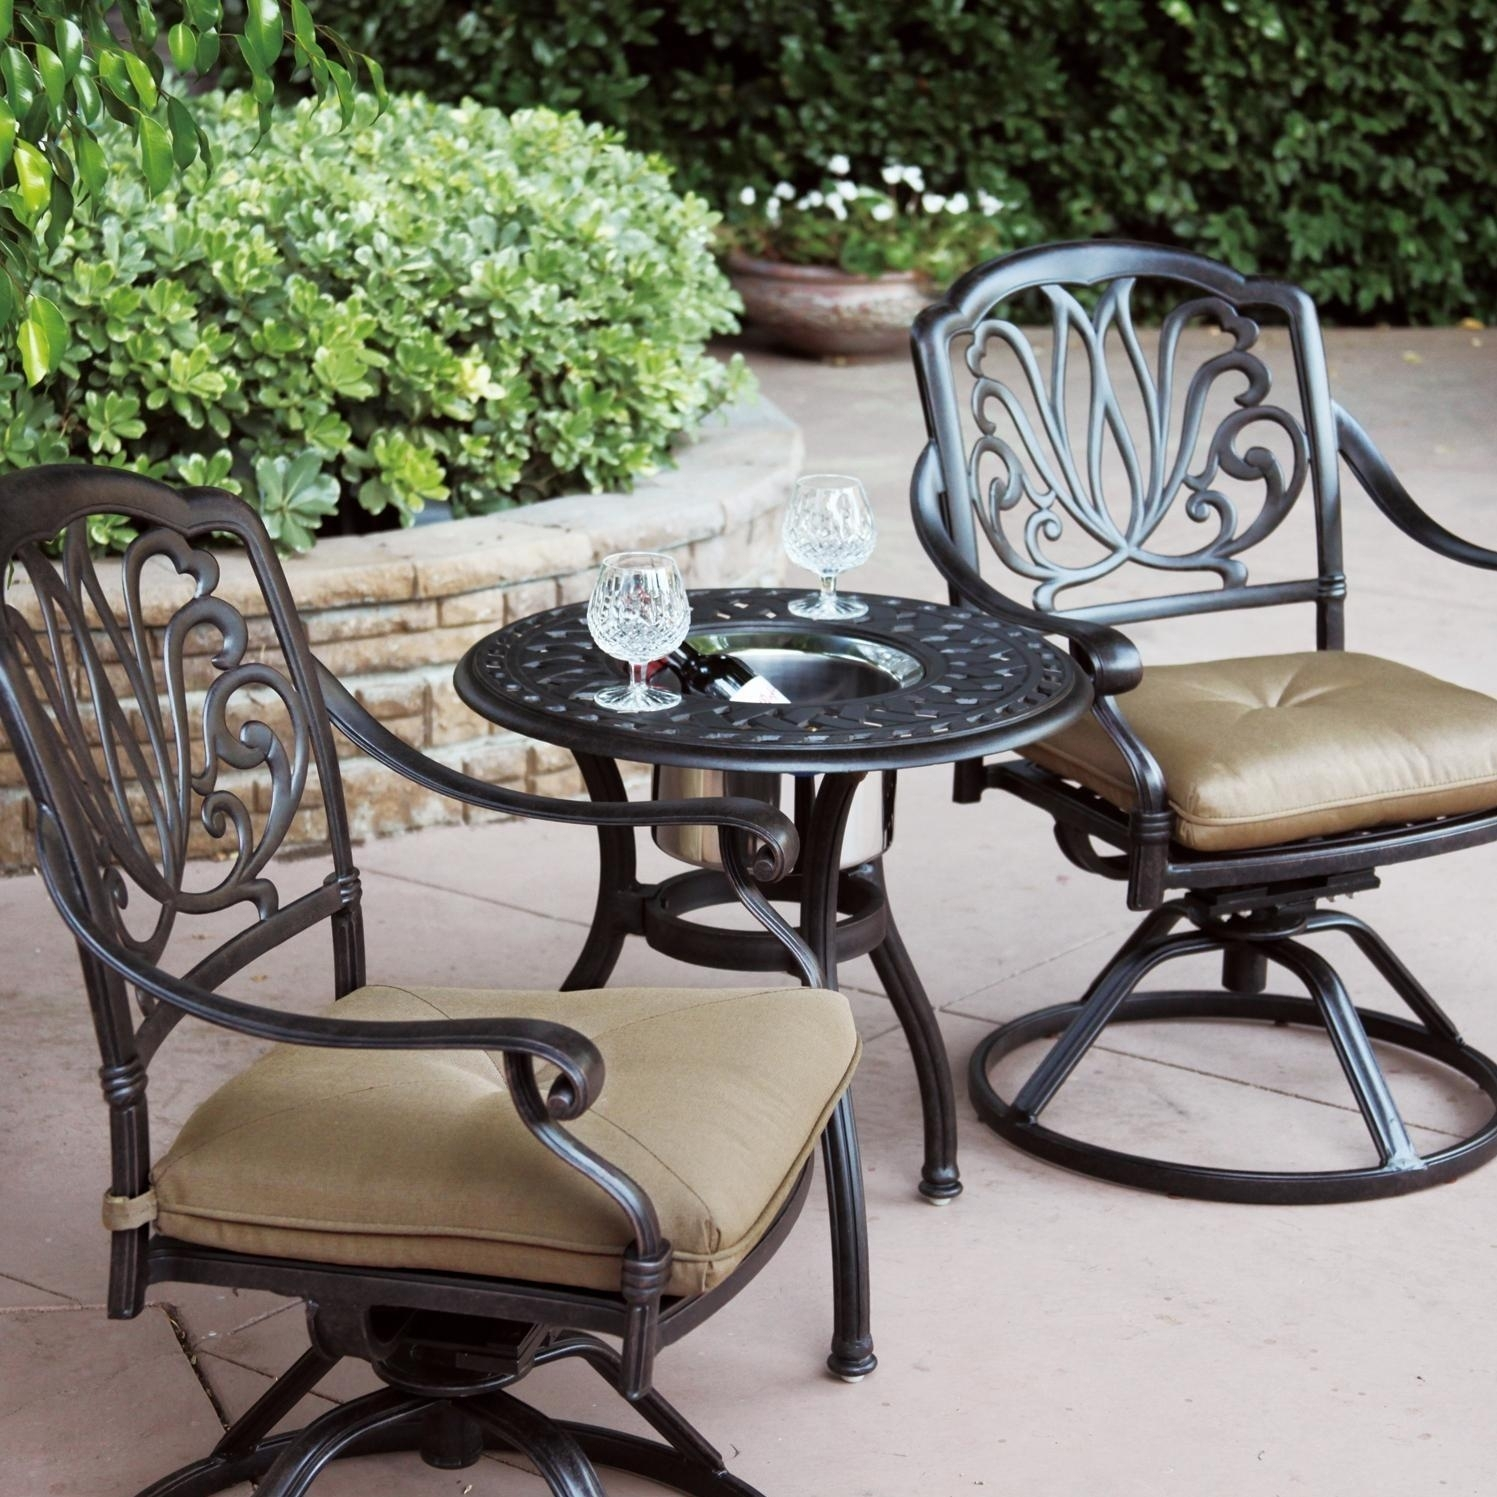 Inspiration about Darlee Elisabeth 3 Piece Cast Aluminum Patio Bistro Set Inside Wrought Iron Patio Rocking Chairs (#15 of 15)